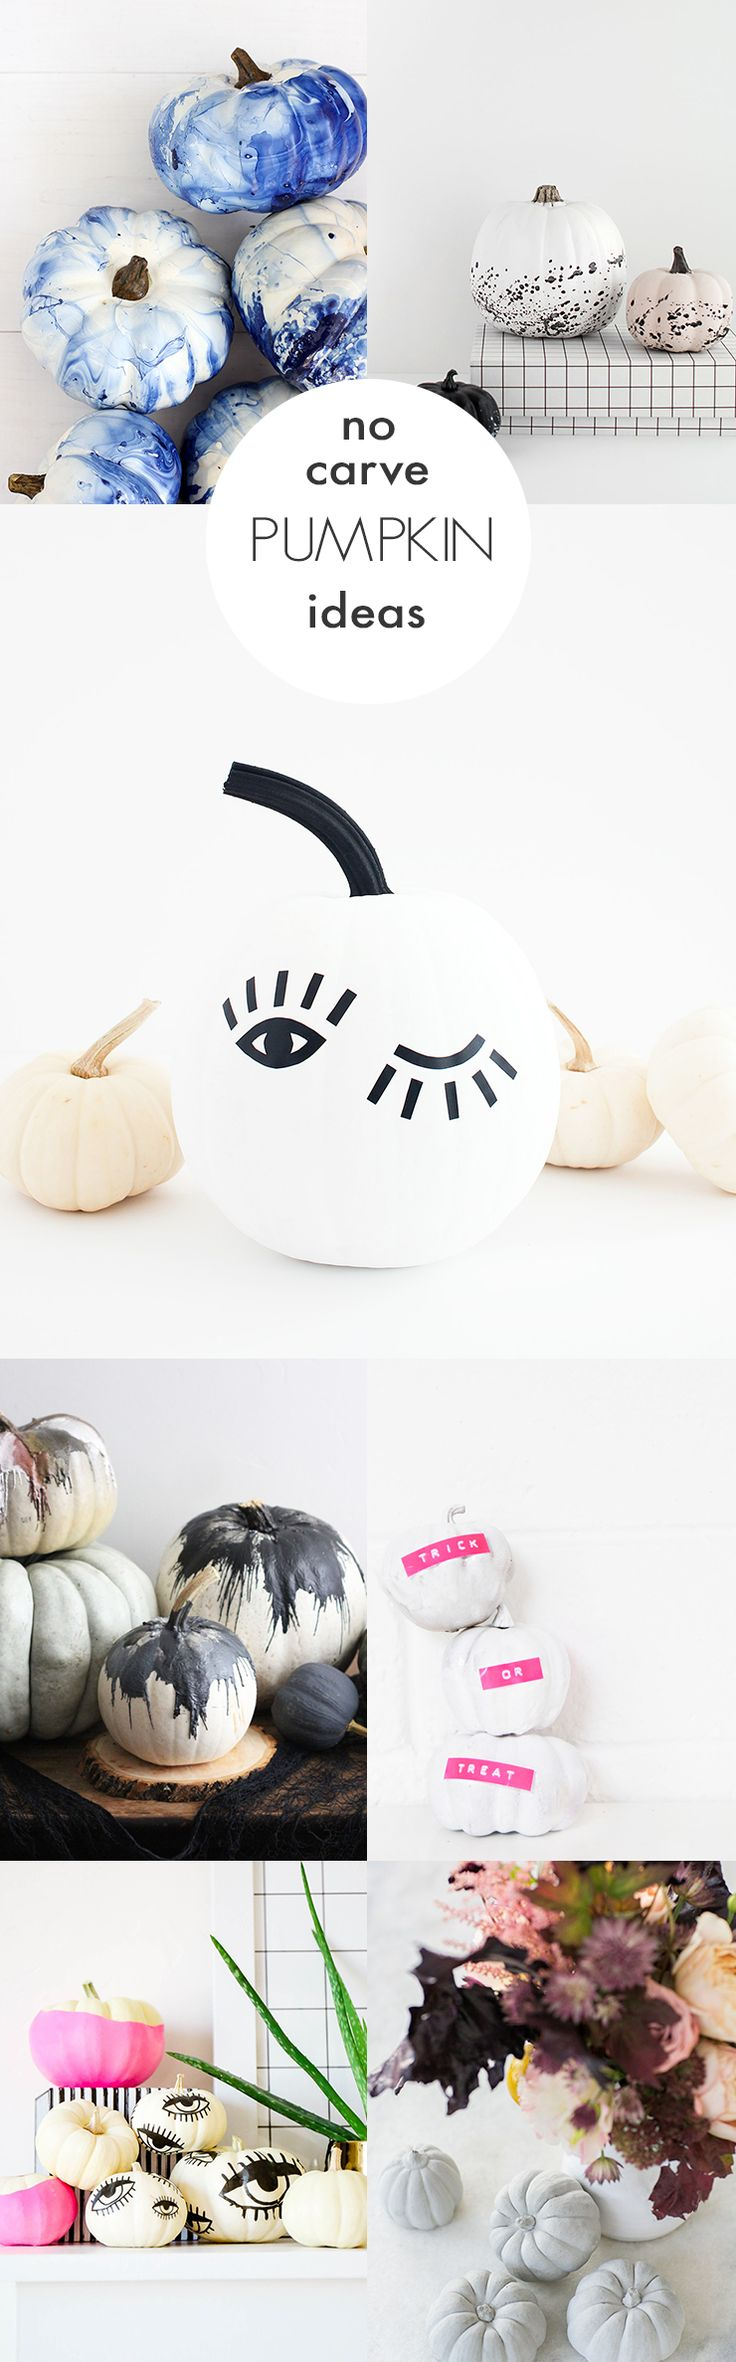 And fashion magic halloween pumpkins carving and decorating ideas - Last Minute No Carve Pumpkin Decorating Ideas